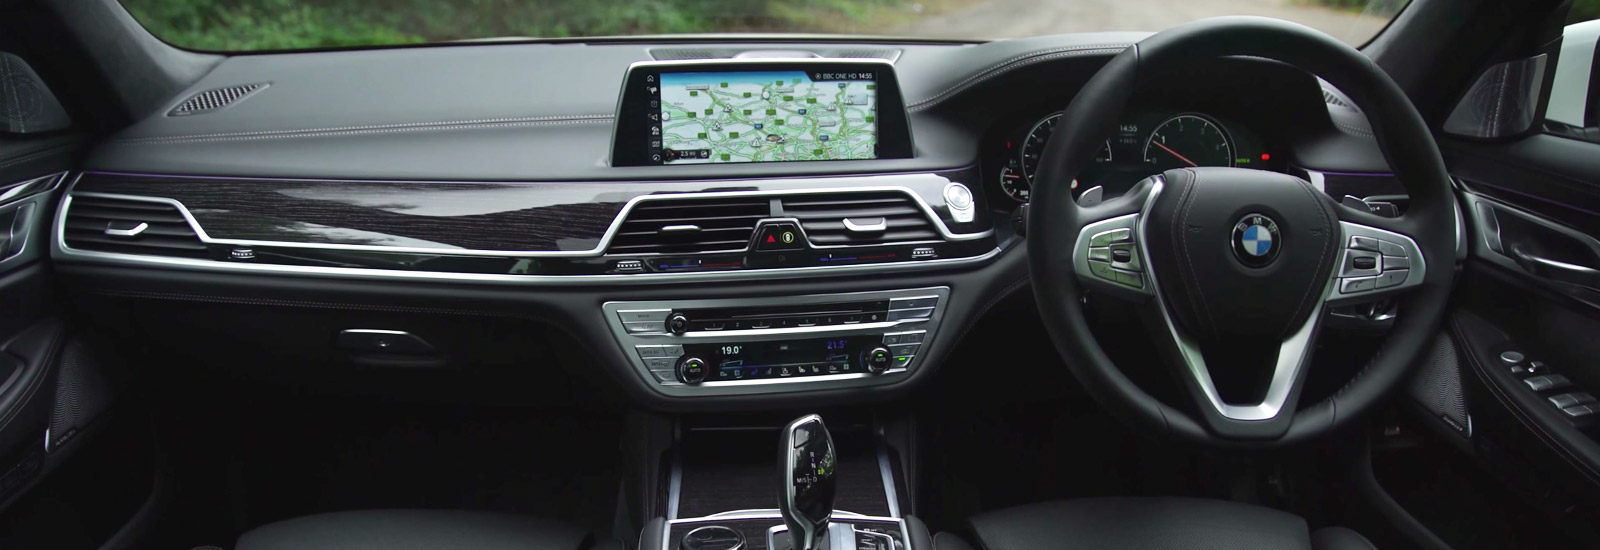 2018 bmw 7 series interior. unique series the new x7u0027s cabin will be inspired by the current 7 series shown hereu2026 on 2018 bmw series interior